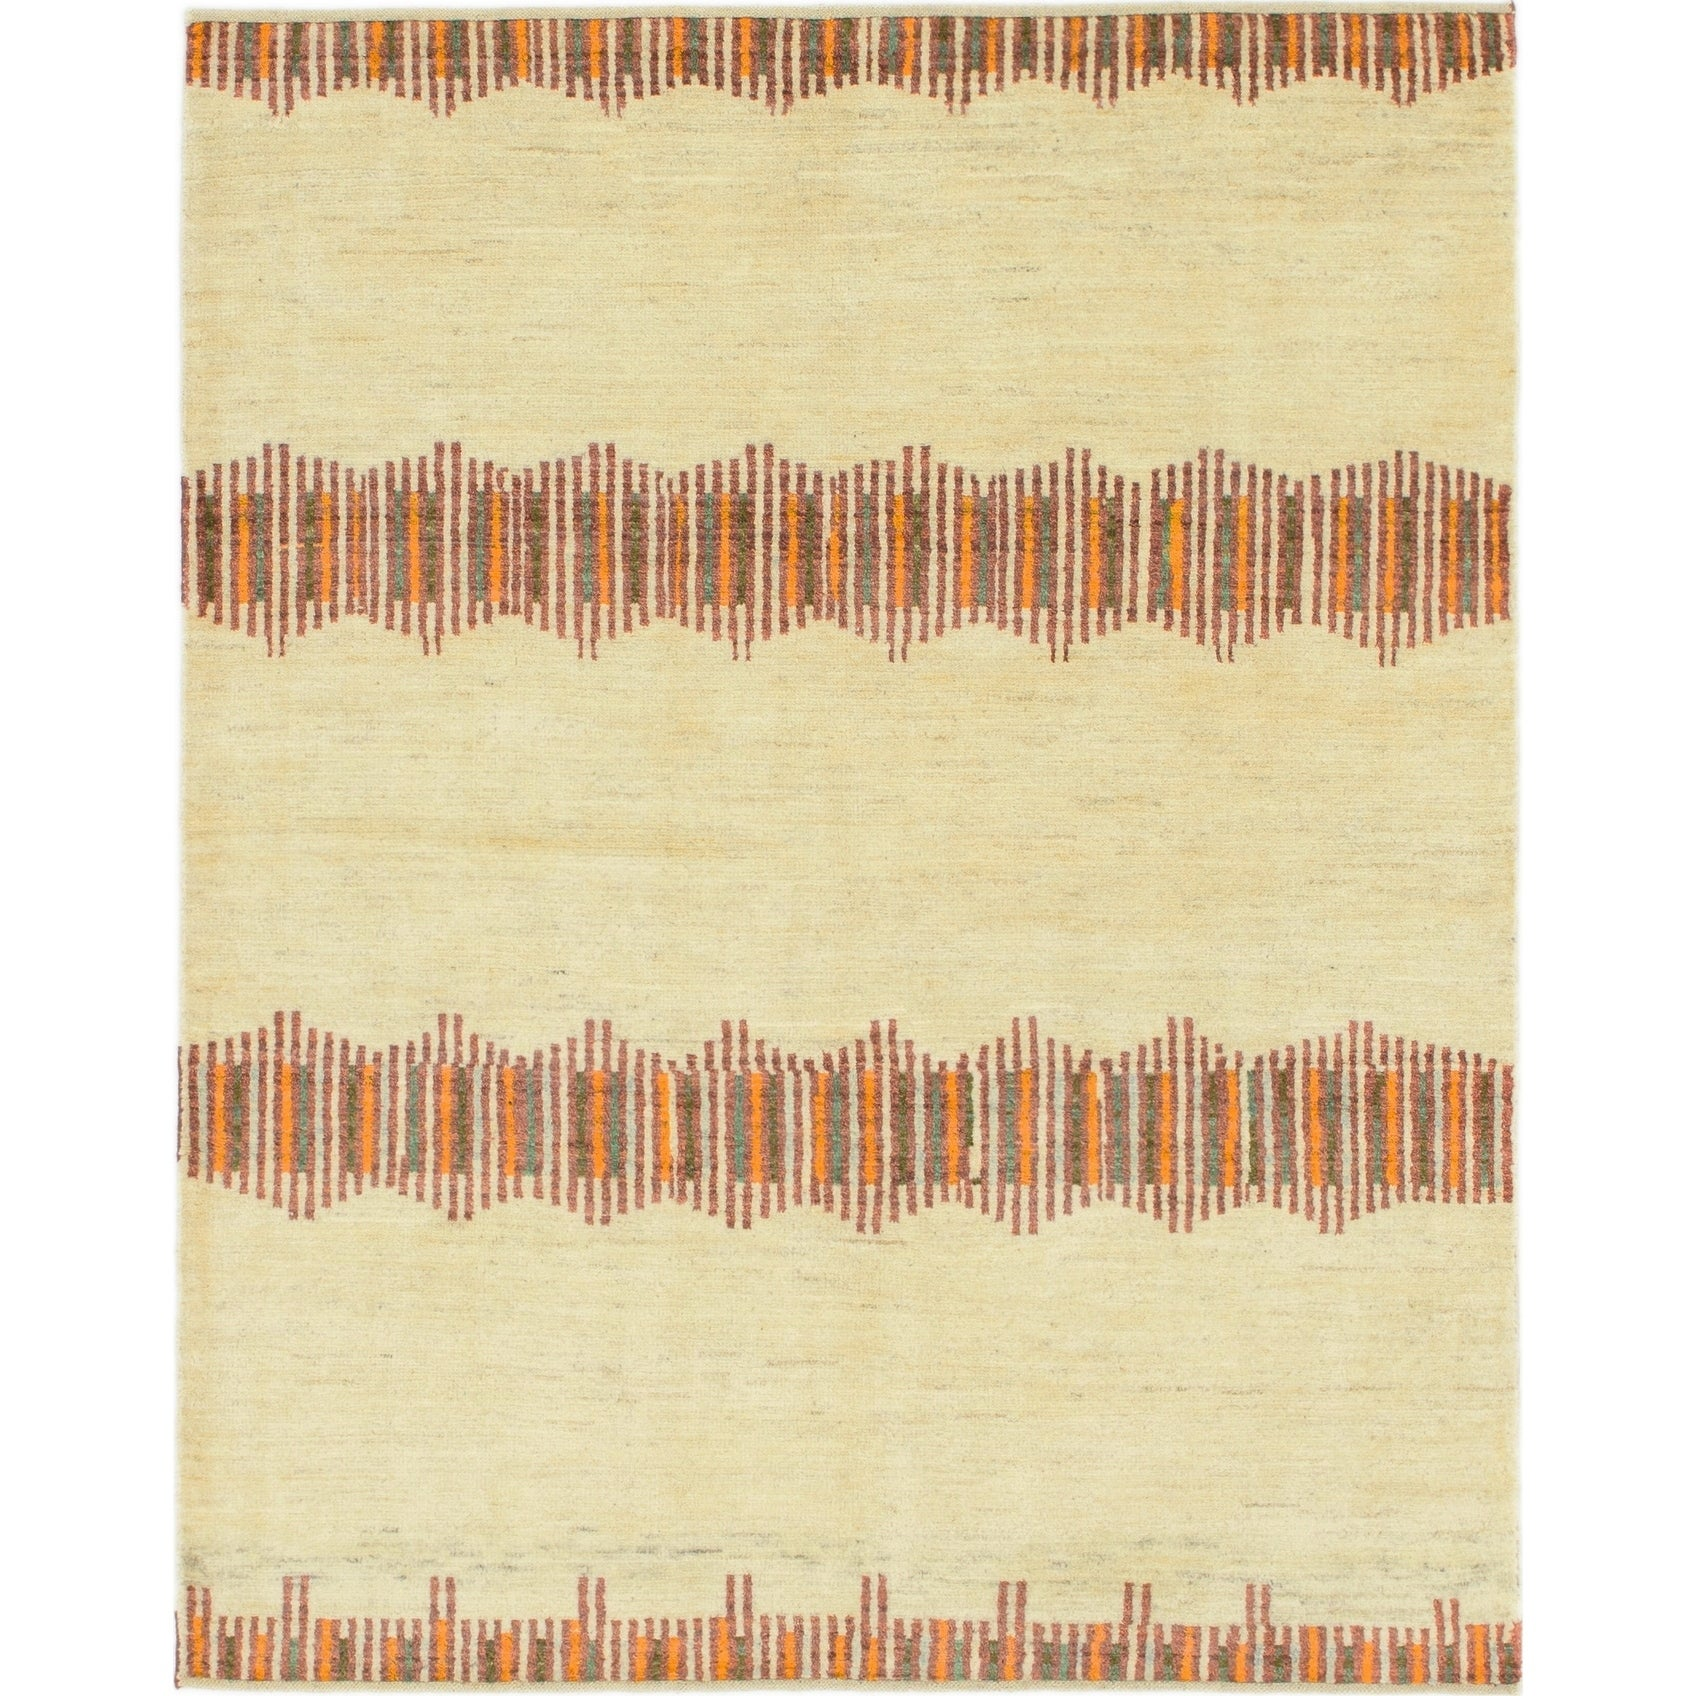 Hand Knotted Kashkuli Gabbeh Wool Area Rug - 5 x 6 5 (Cream - 5 x 6 5)